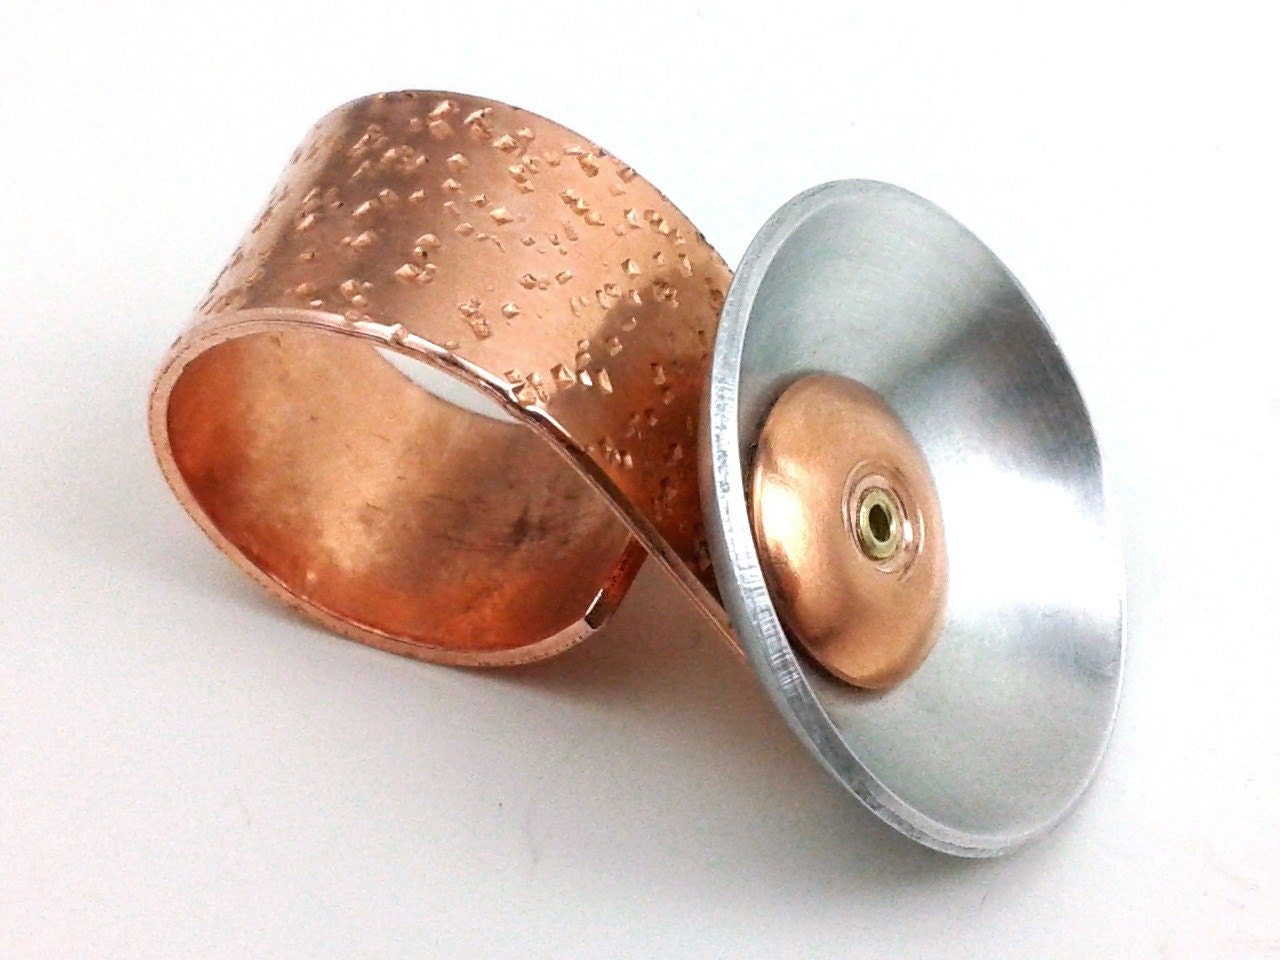 Sale Copper Cocktail Ring Knuckle Duster Band Funky